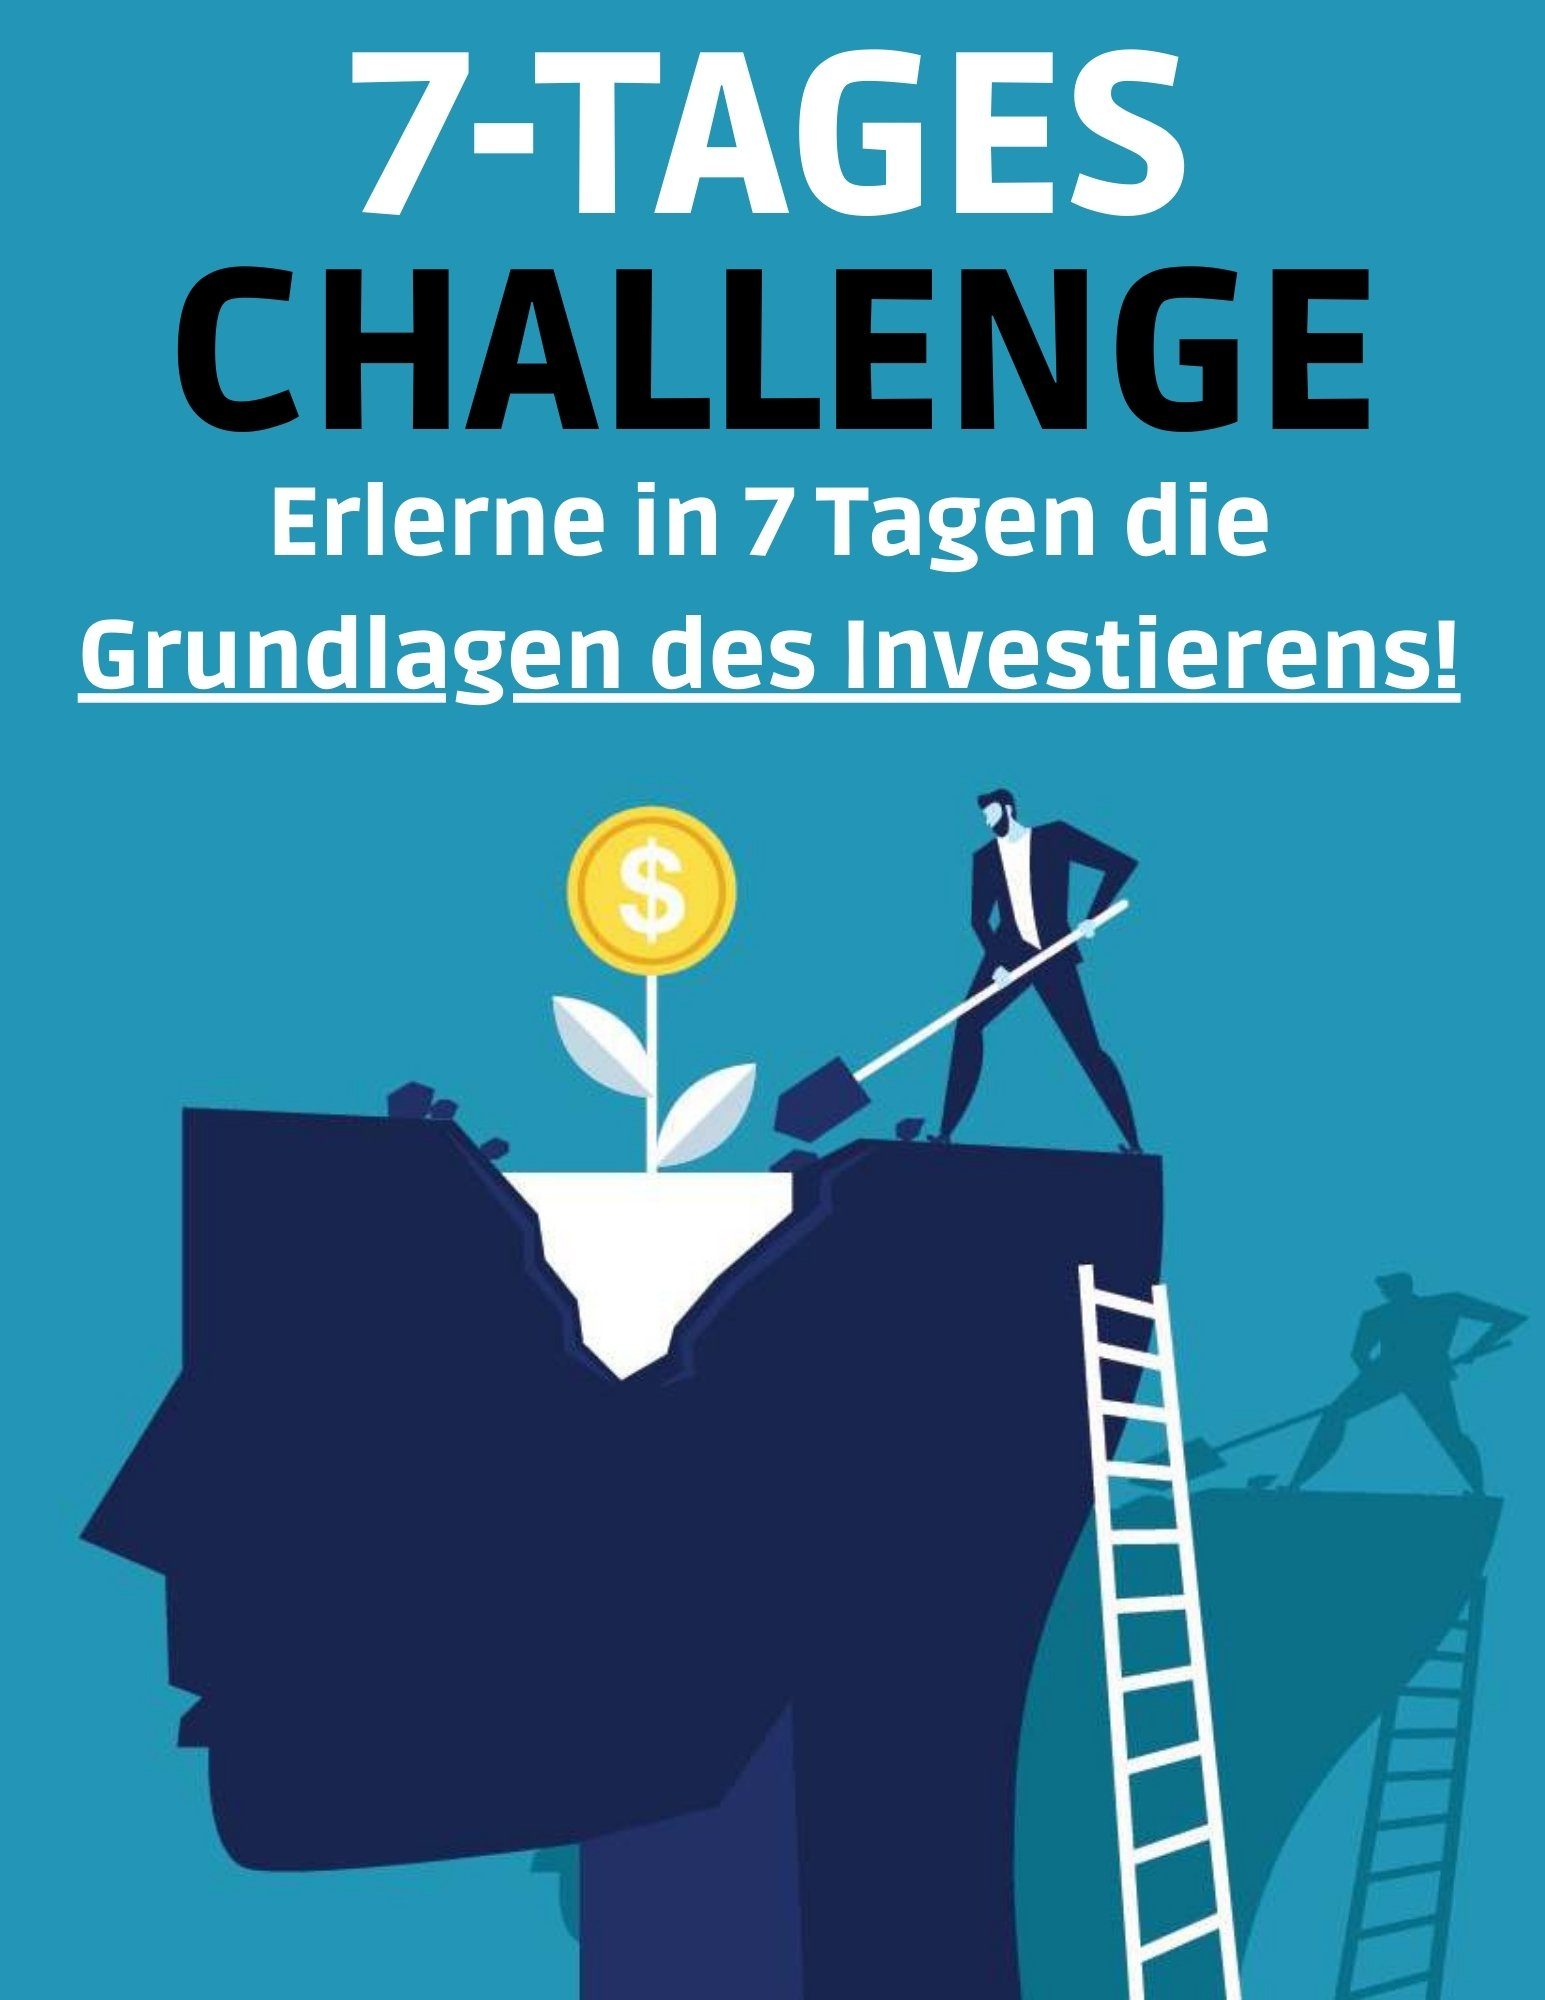 7-Tages-Challenge